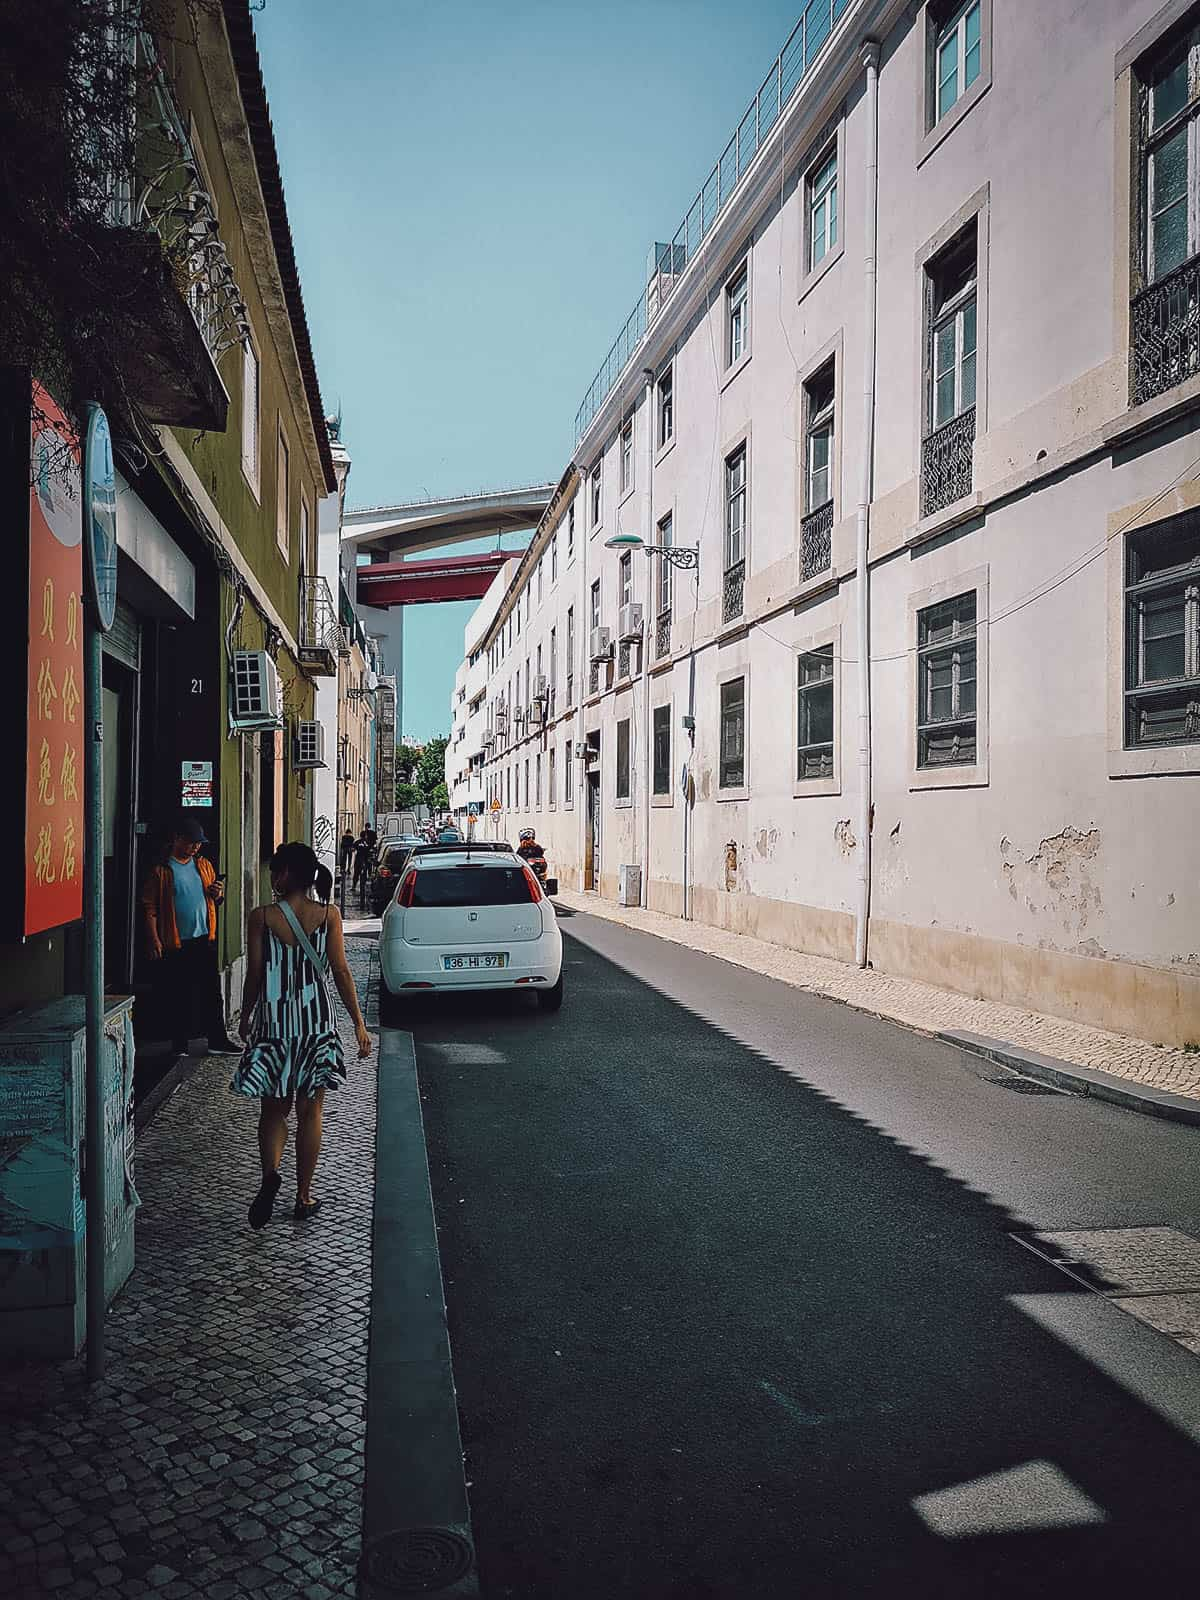 Walking to Lx Factory in Lisbon, Portugal